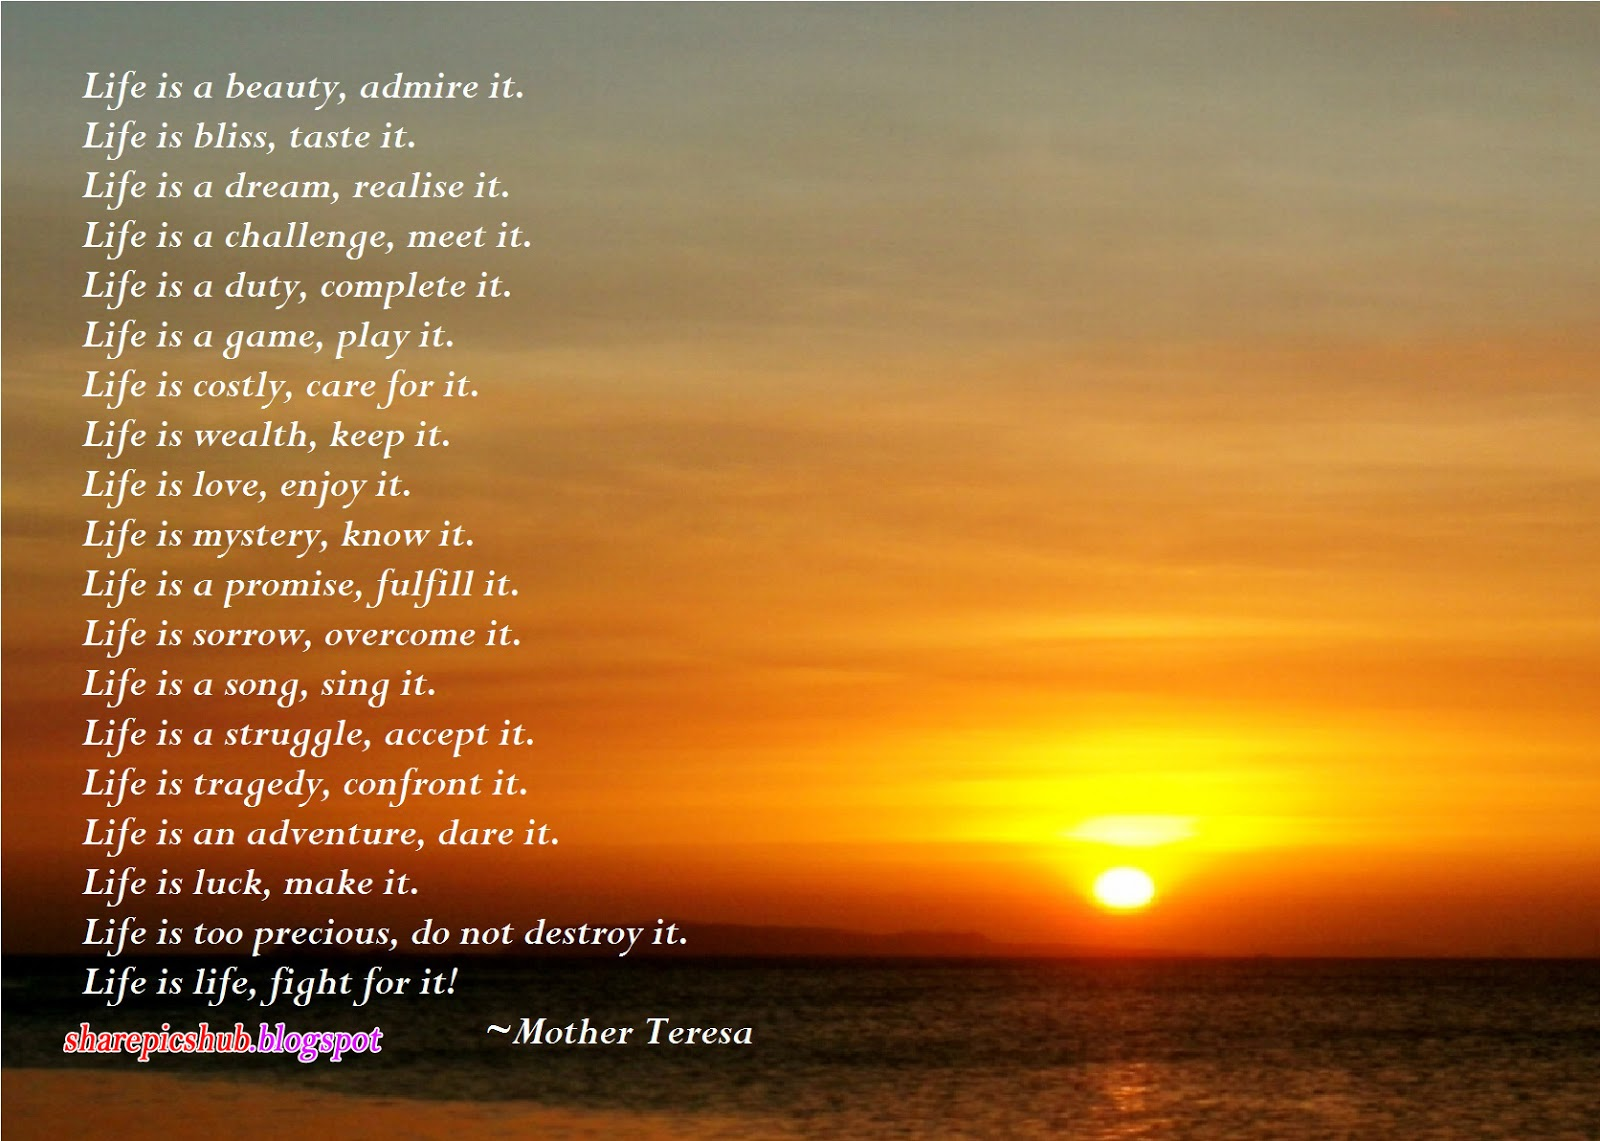 Share Pics Hub Life By Mother Teresa Beautiful Poem In